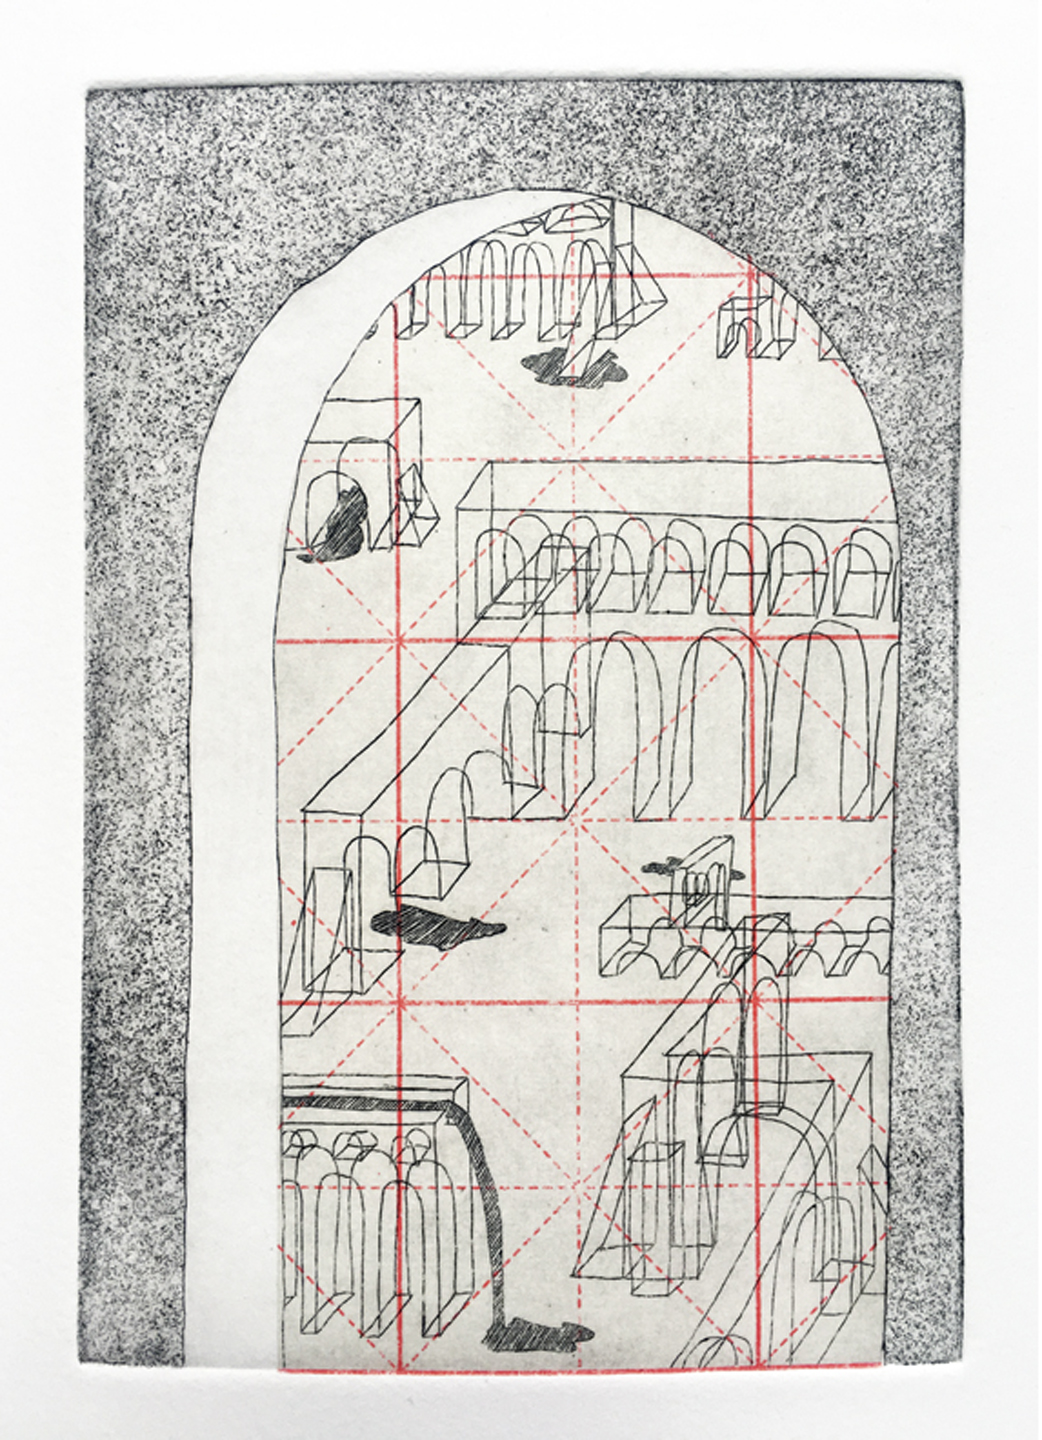 "LAYNE HINTON  Aquaducts 2018 Intaglio print with Chine-collé on paper, 10""X 13"", Framed Edition of 6  Estimated Value: $400  'Aqueducts' is a continuation of Hinton's interest in architecture, imagined spaces, and geometric structures. This work explores the reduction of architectural forms to their most basic corners and edges, an attempt to define shapes through simple wire forms and to investigate the way they become inverted in the process."